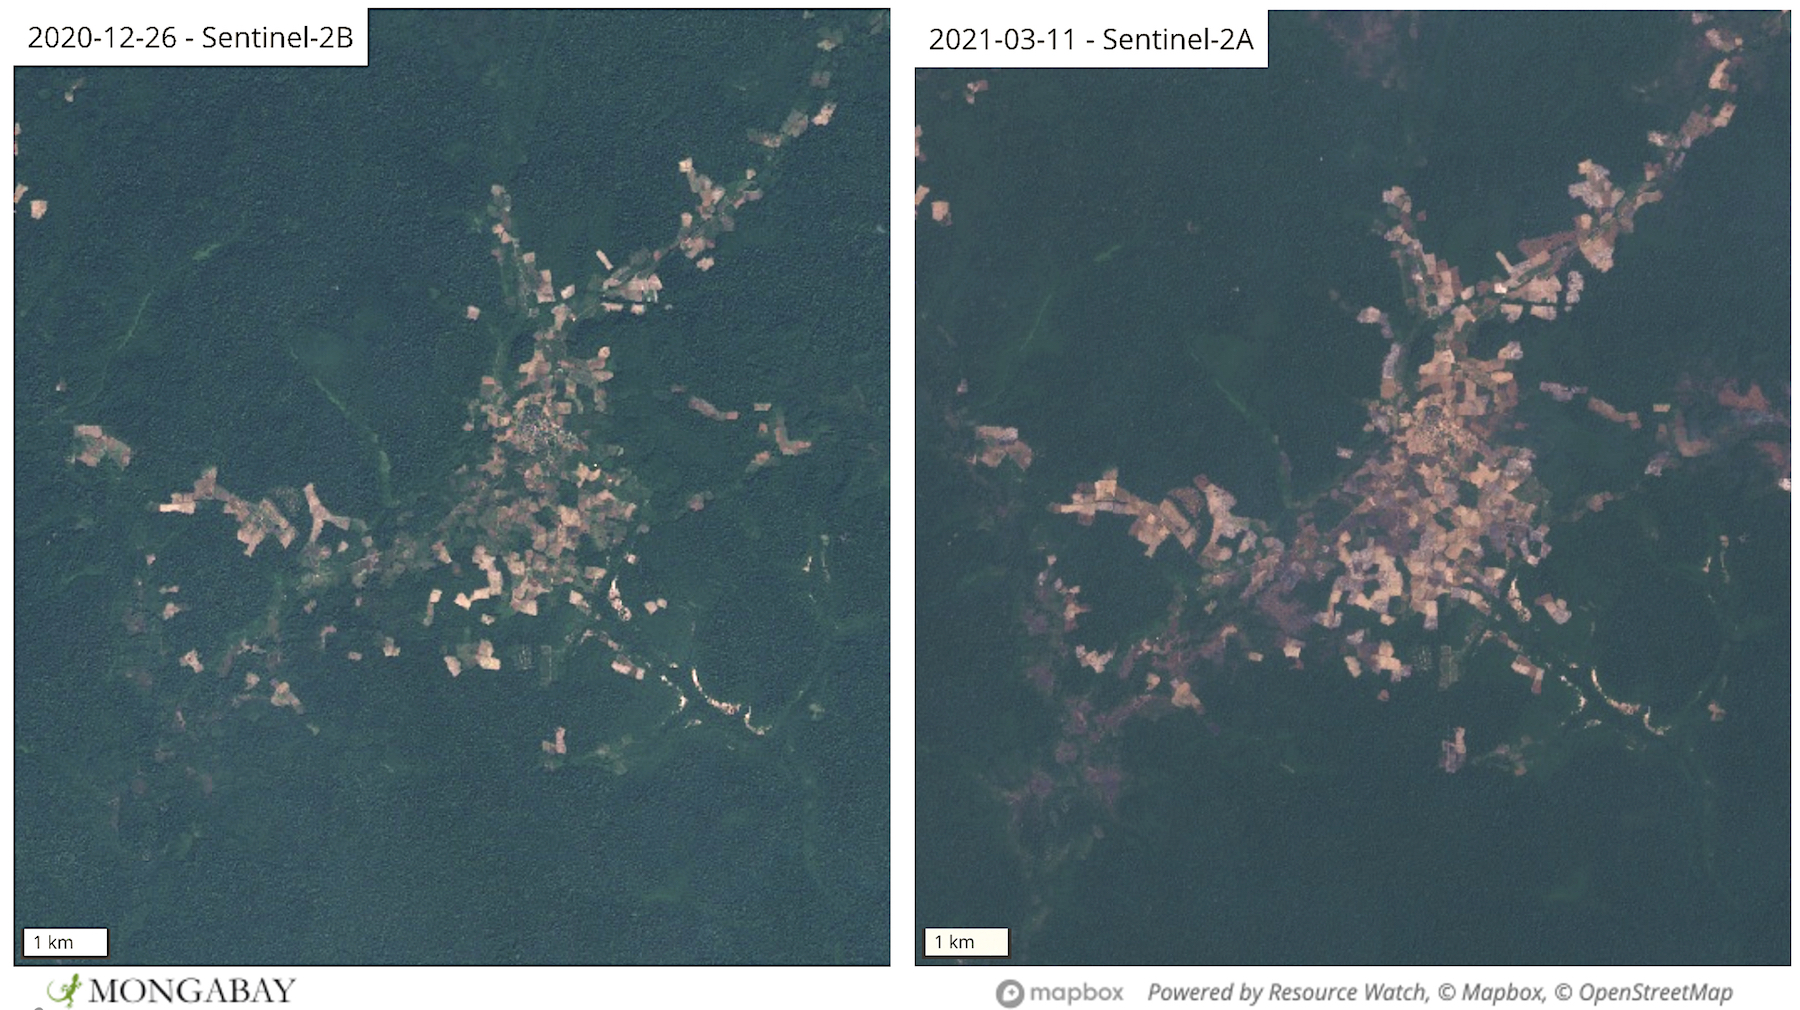 Satellite images show clearings expanding in the northern part of Prey Lang Wildlife Sanctuary.